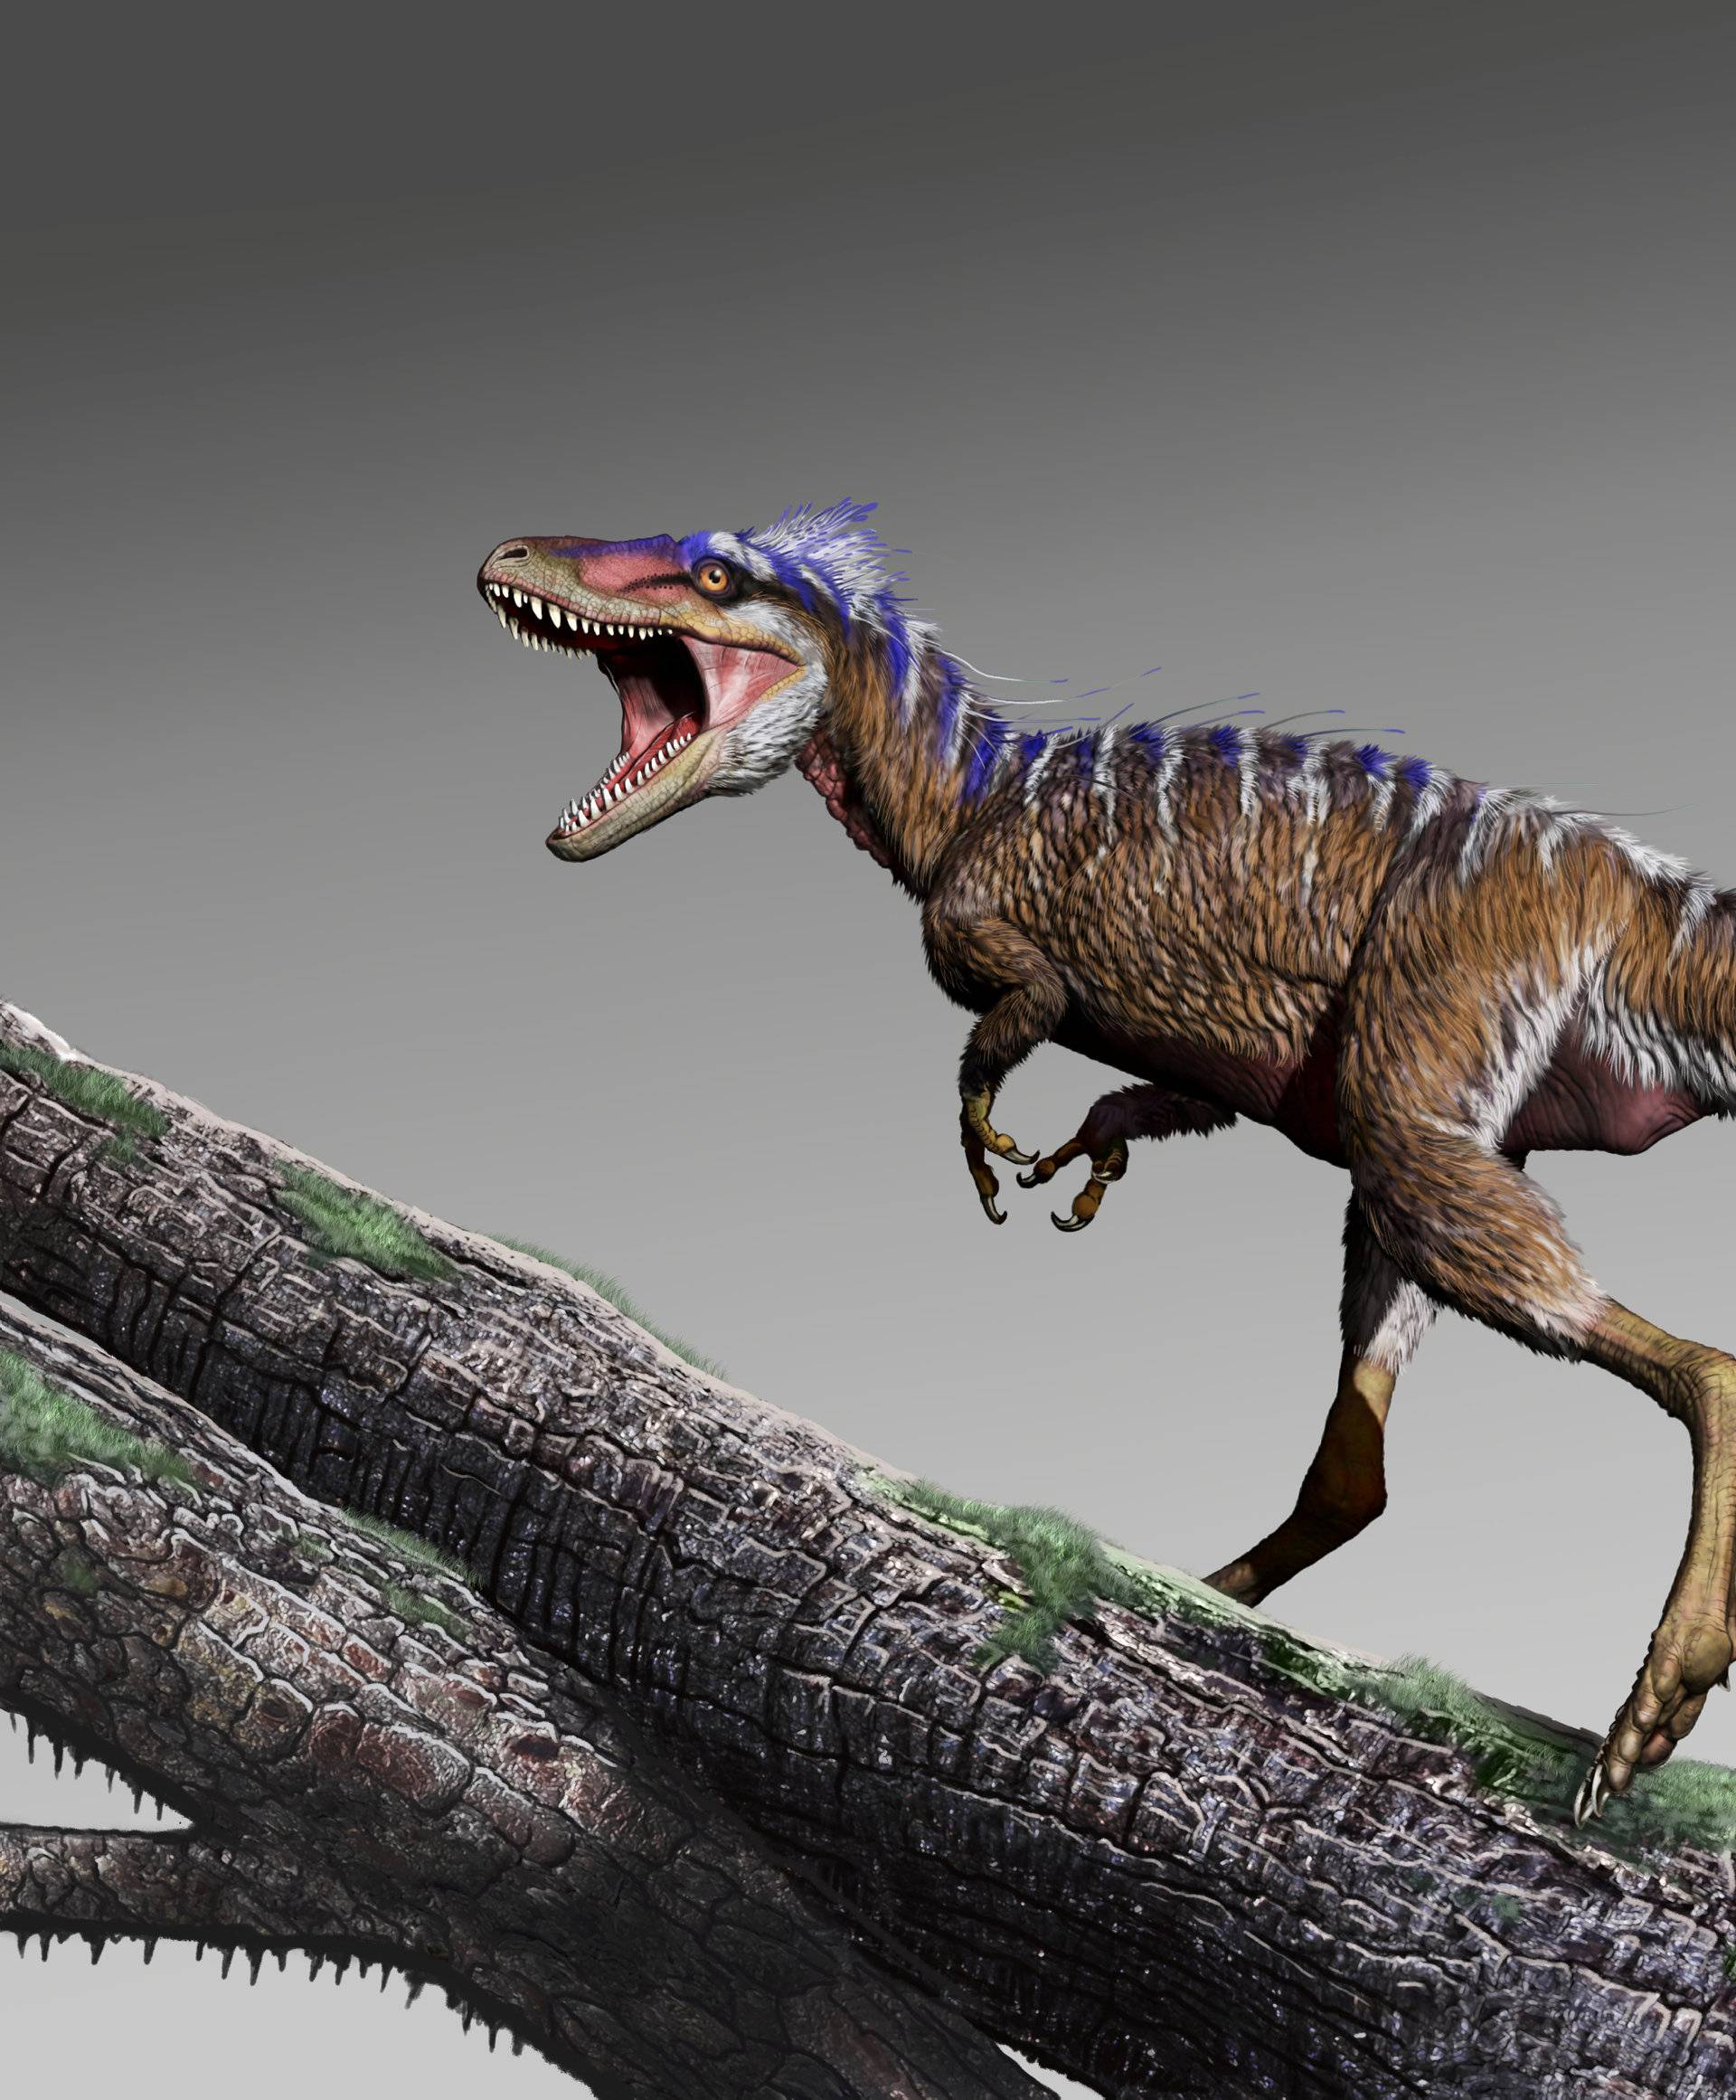 Cretaceous Period dinosaur Moros intrepidus whose fossils were unearthed in central Utah in this artist reconstruction